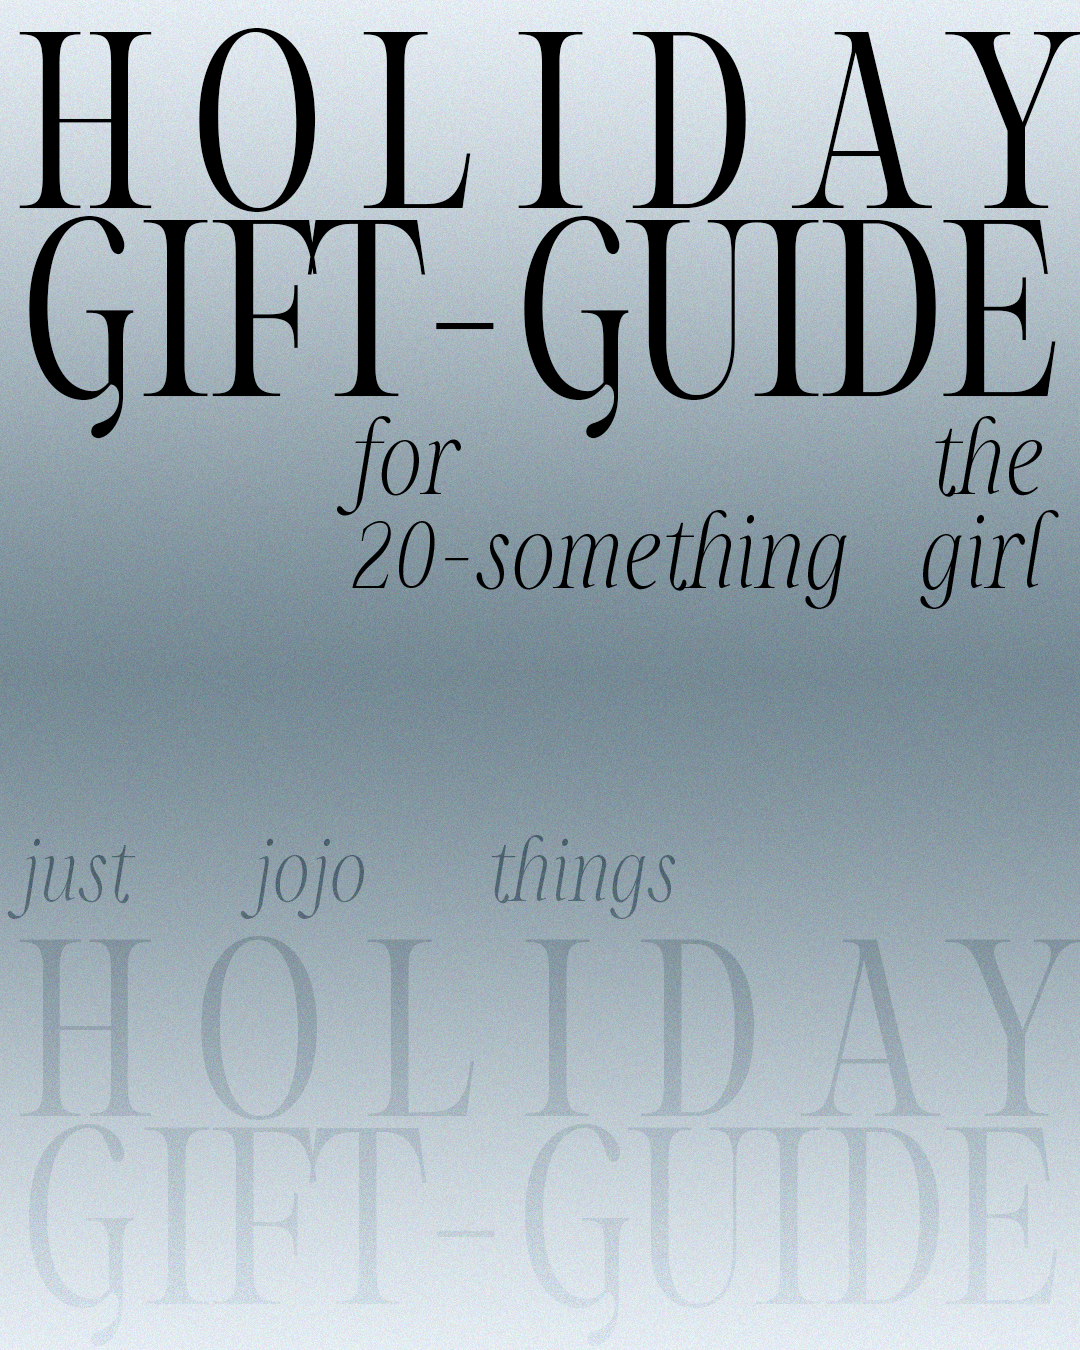 Holiday Gift Guide for girl in her 20s, young adult gift guide, Holiday gift guide